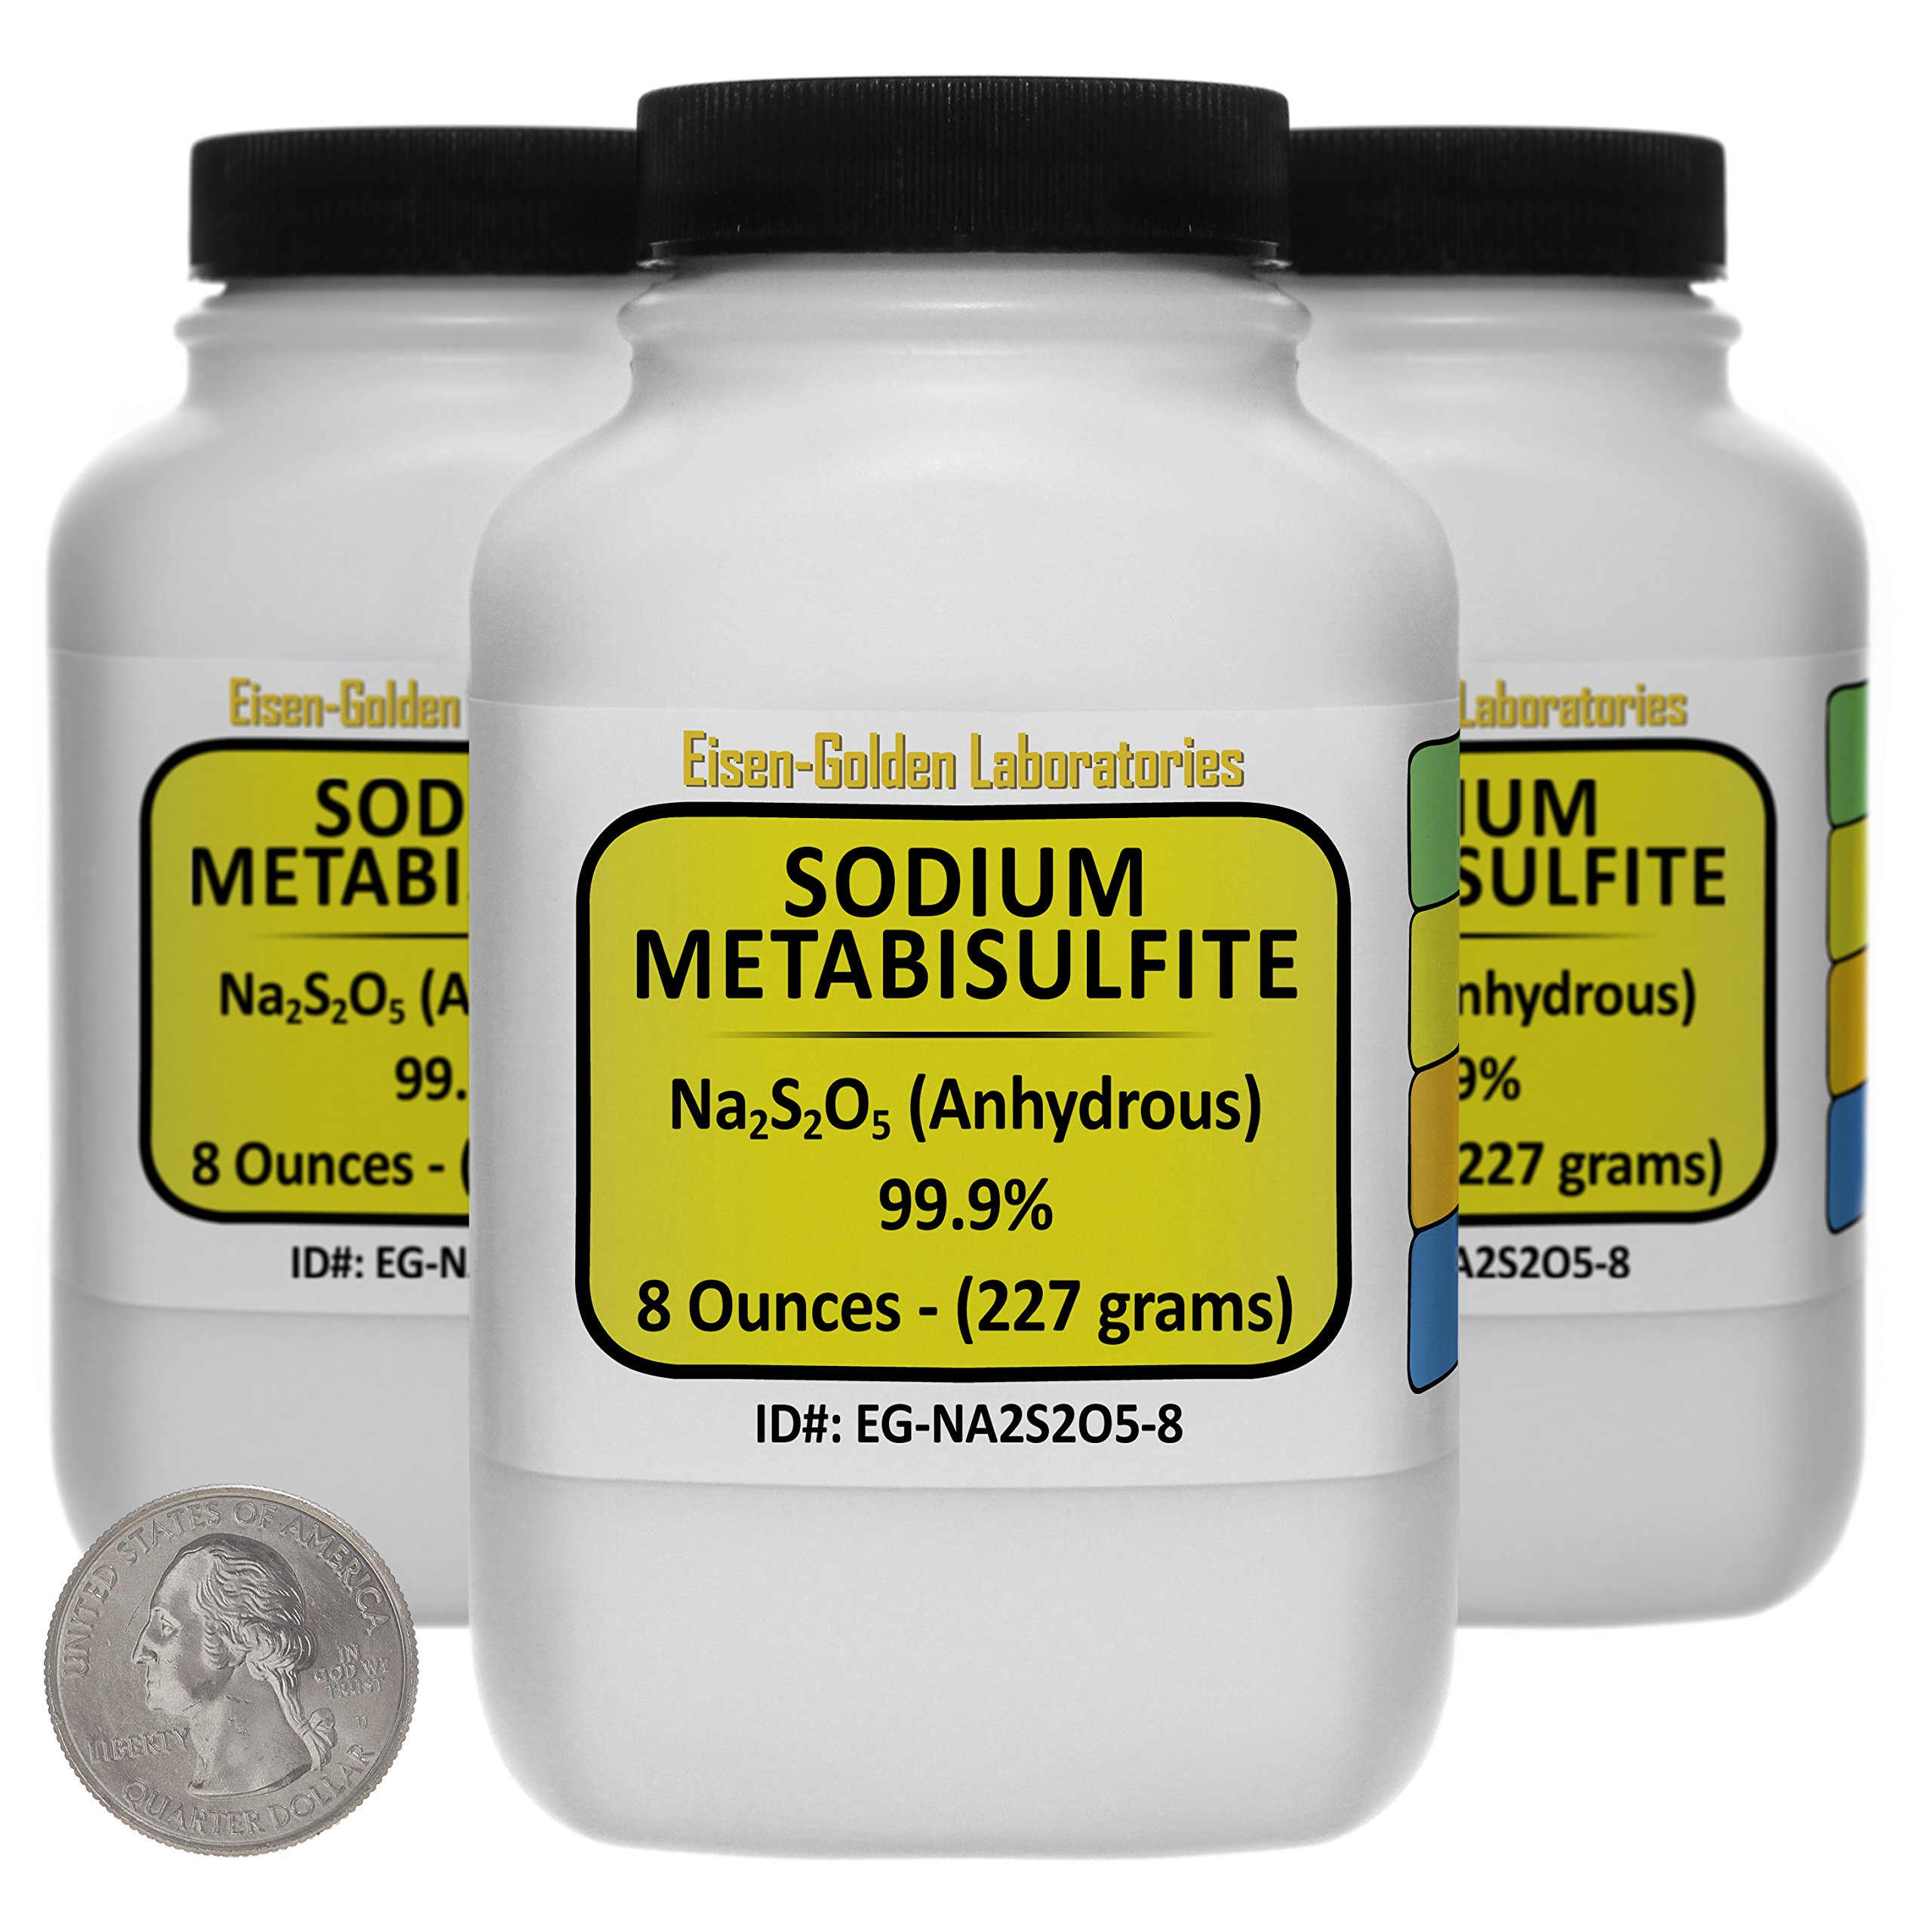 Sodium Metabisulfite [Na2S2O5] 99.9% ACS Grade Powder 1.5 Lb in Three Space-Saver Bottles USA